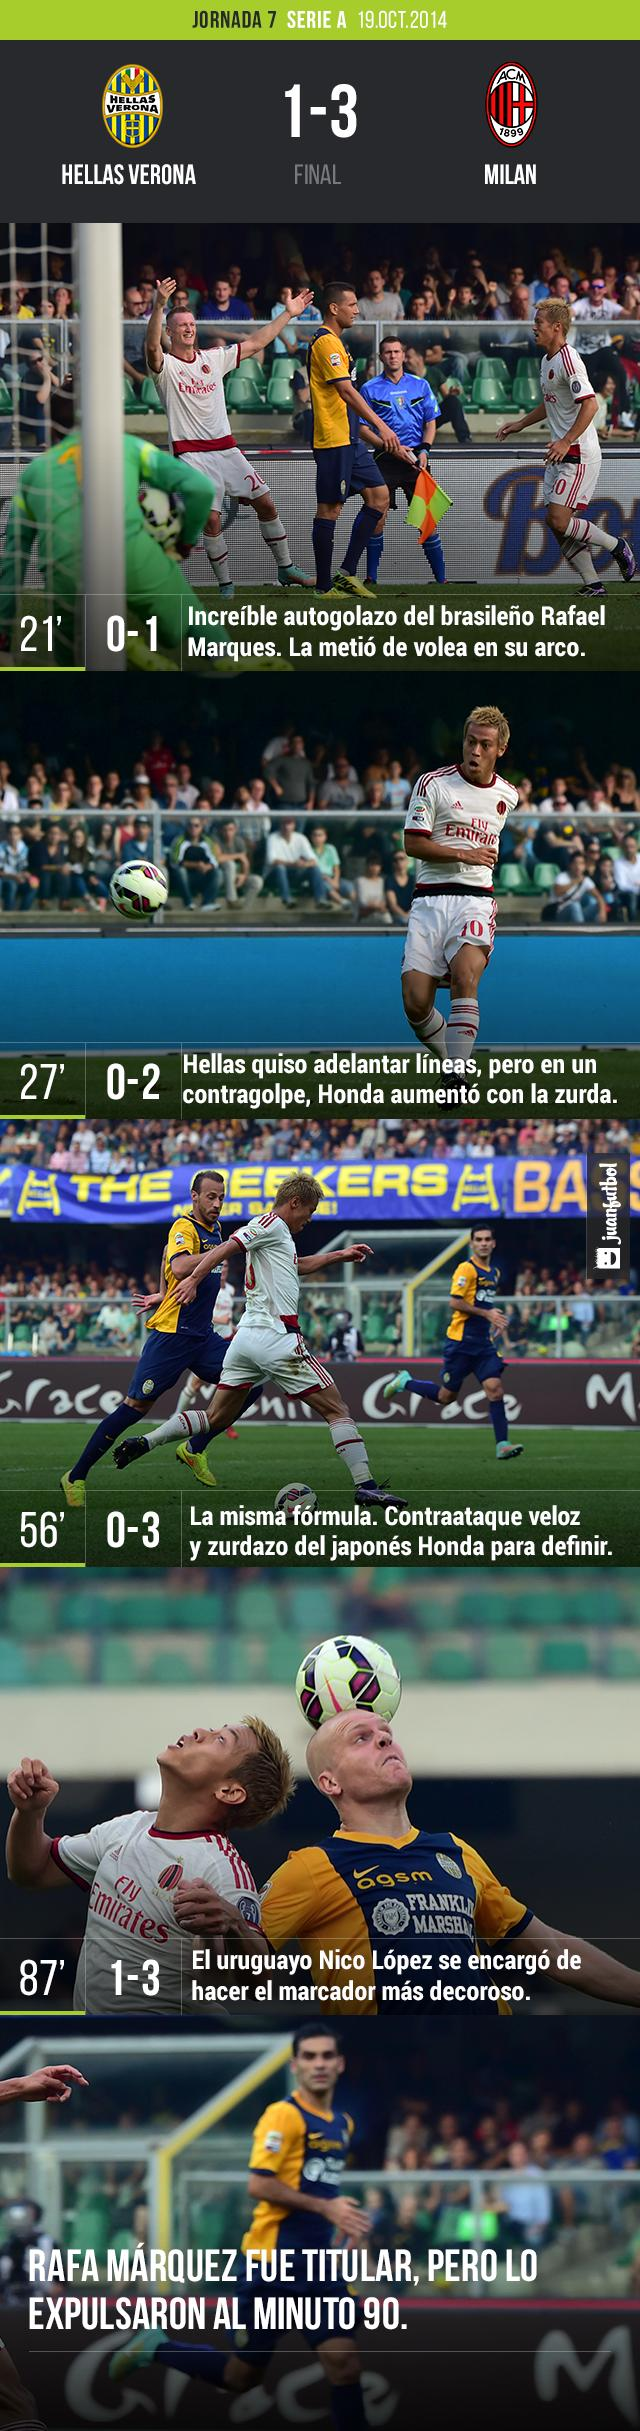 Hellas Verona vs. Milan